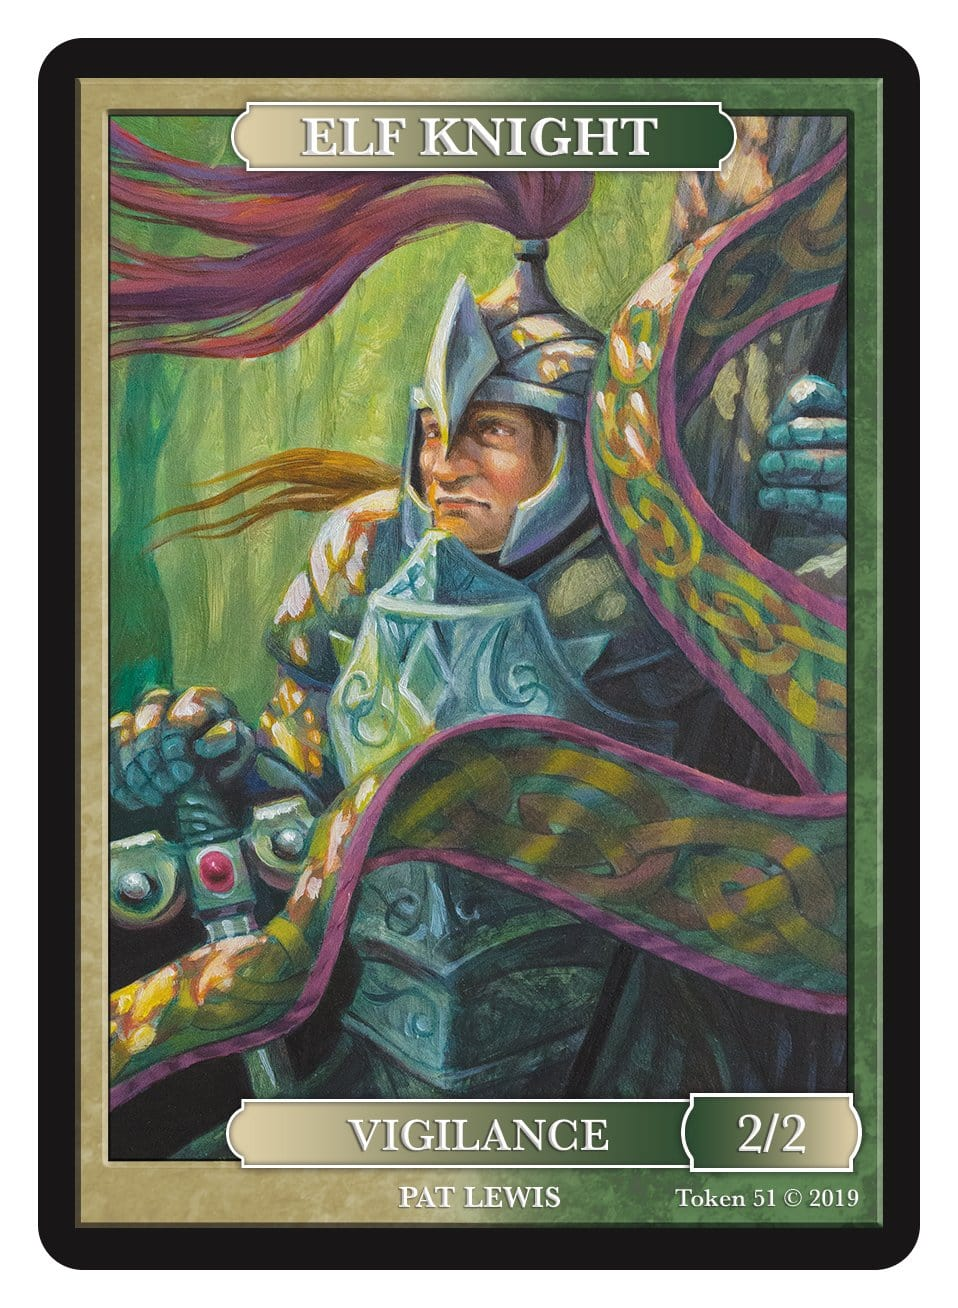 Elf Knight Token (2/2 - Vigilance) by Pat Lewis - Token - Original Magic Art - Accessories for Magic the Gathering and other card games